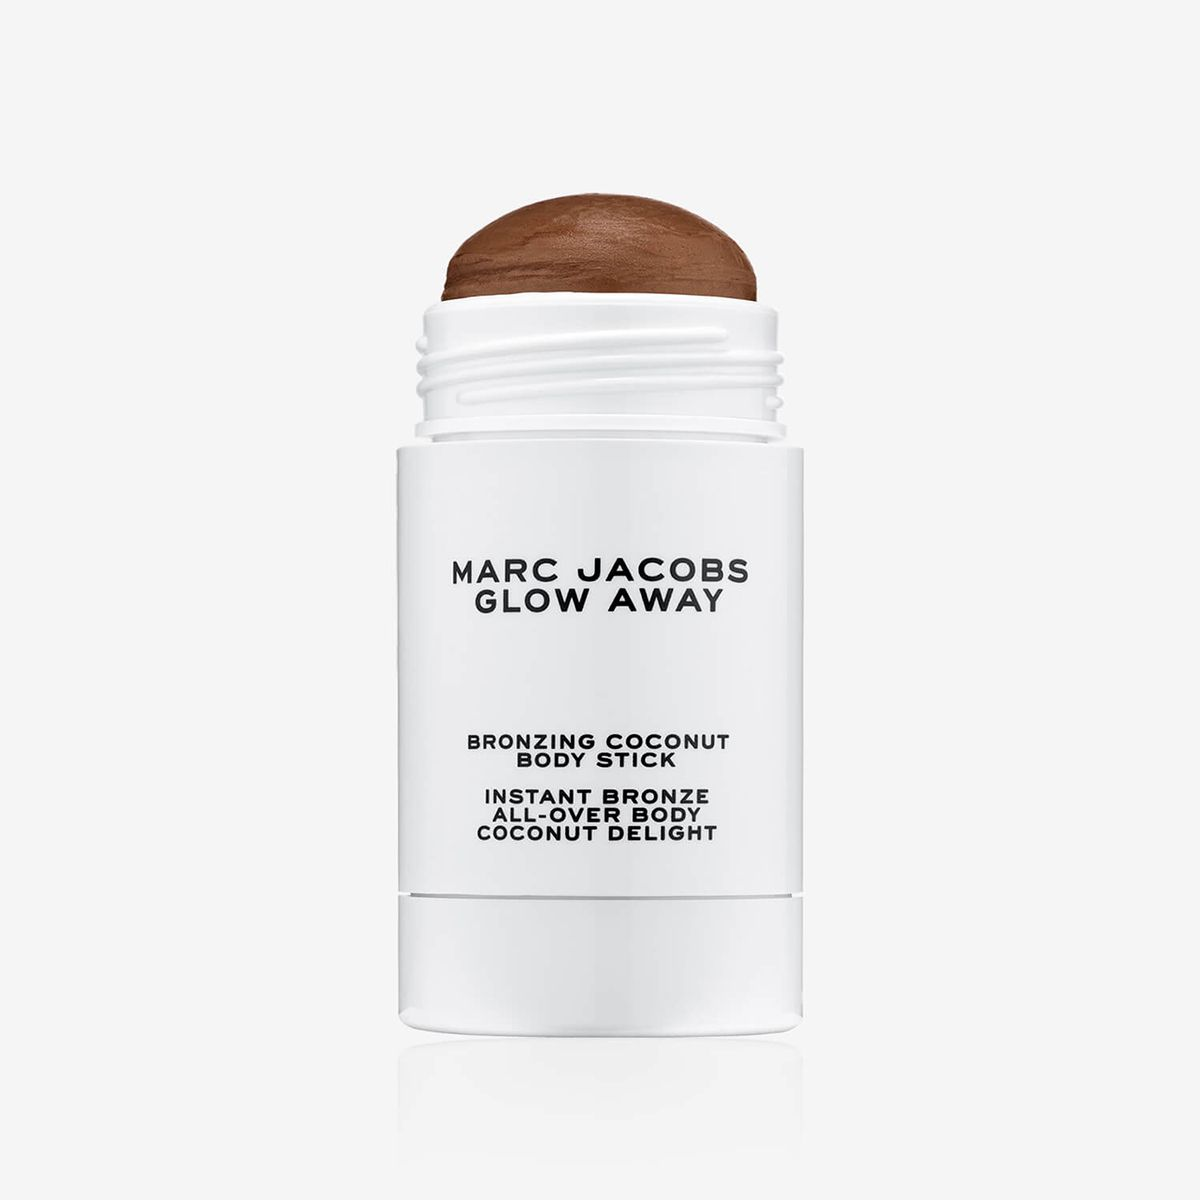 We Tested All The On-Sale Marc Jacobs Beauty Products—These Were the Standouts 6